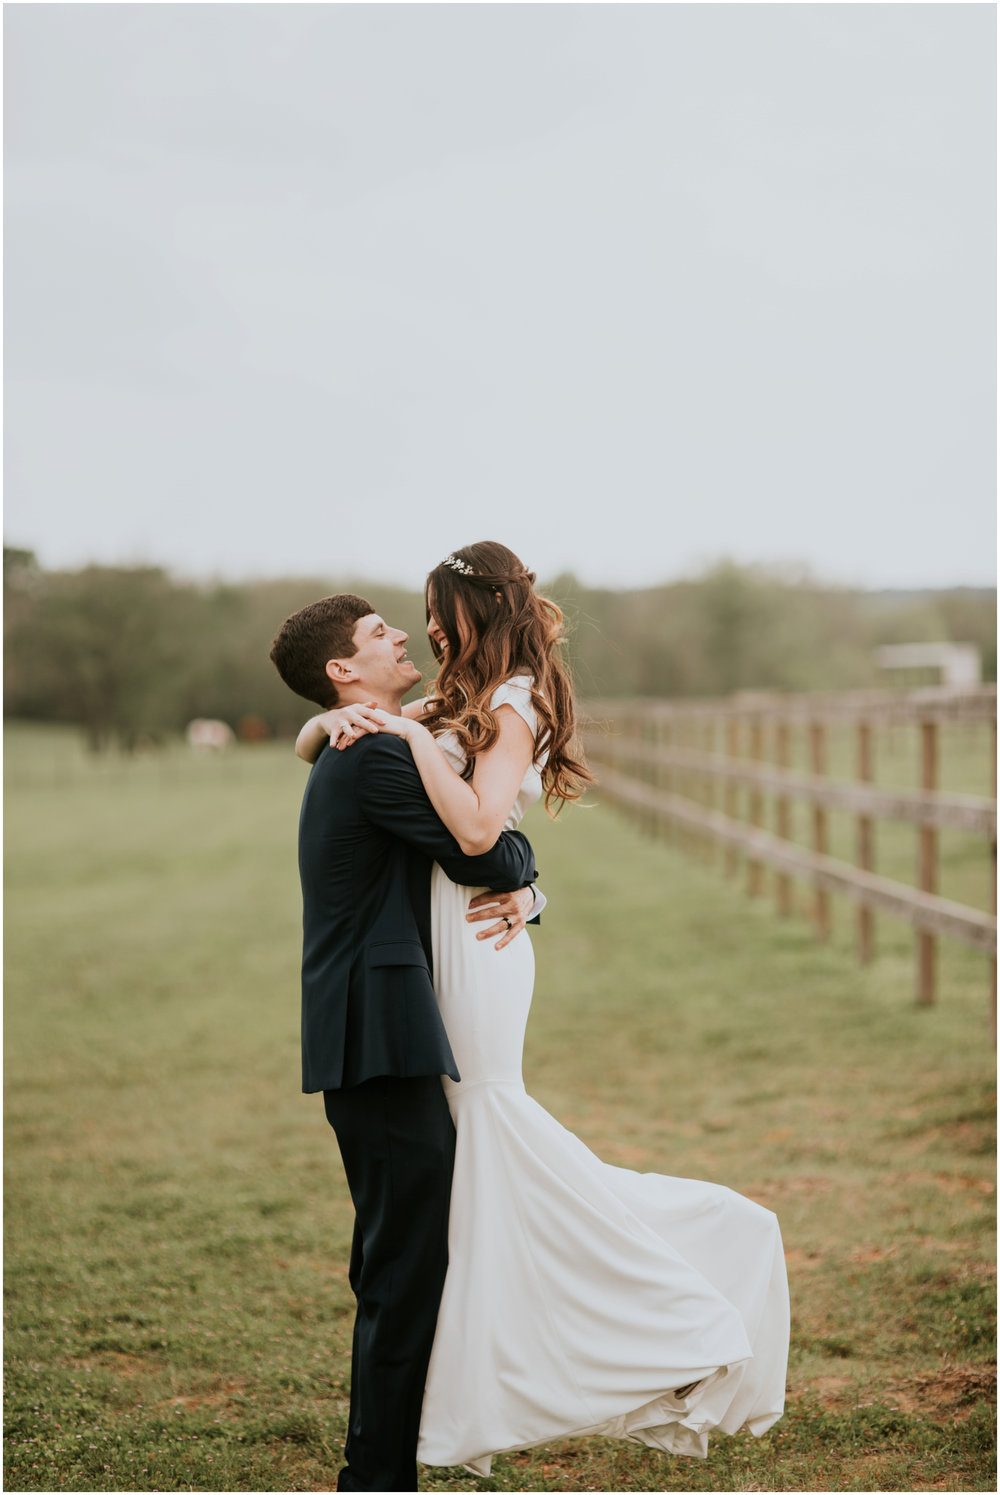 the-farmhouse-wedding-montgomery-texas-erin-nathan-houston-wedding-photographer-caitlyn-nikula-121.jpg